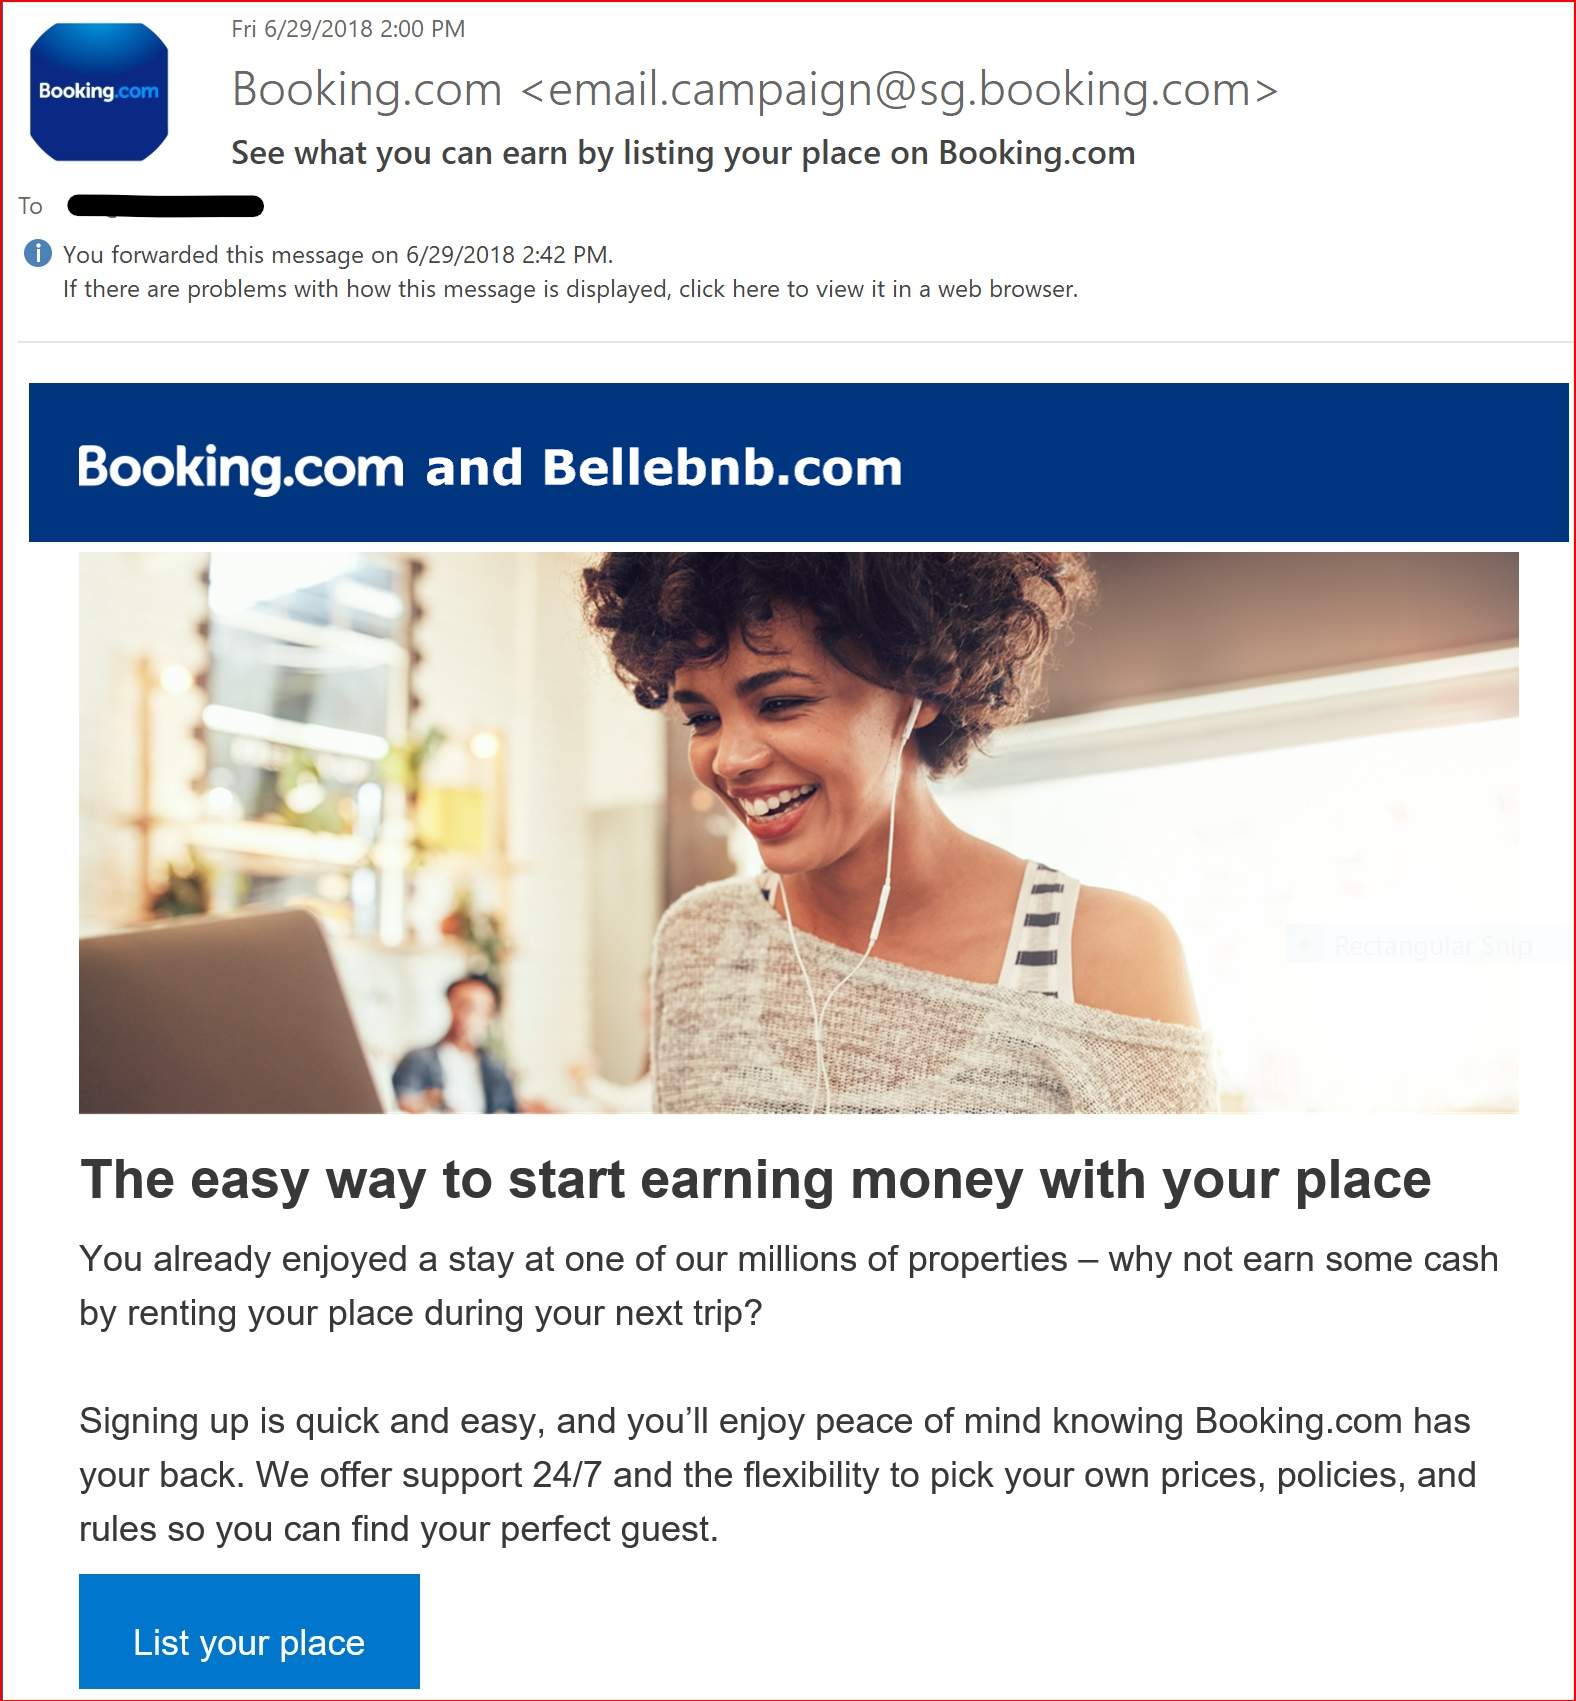 List your place on Booking.com by Bellebnb.com See what you can earn by listing your place on Booking.com. Sign up for free!